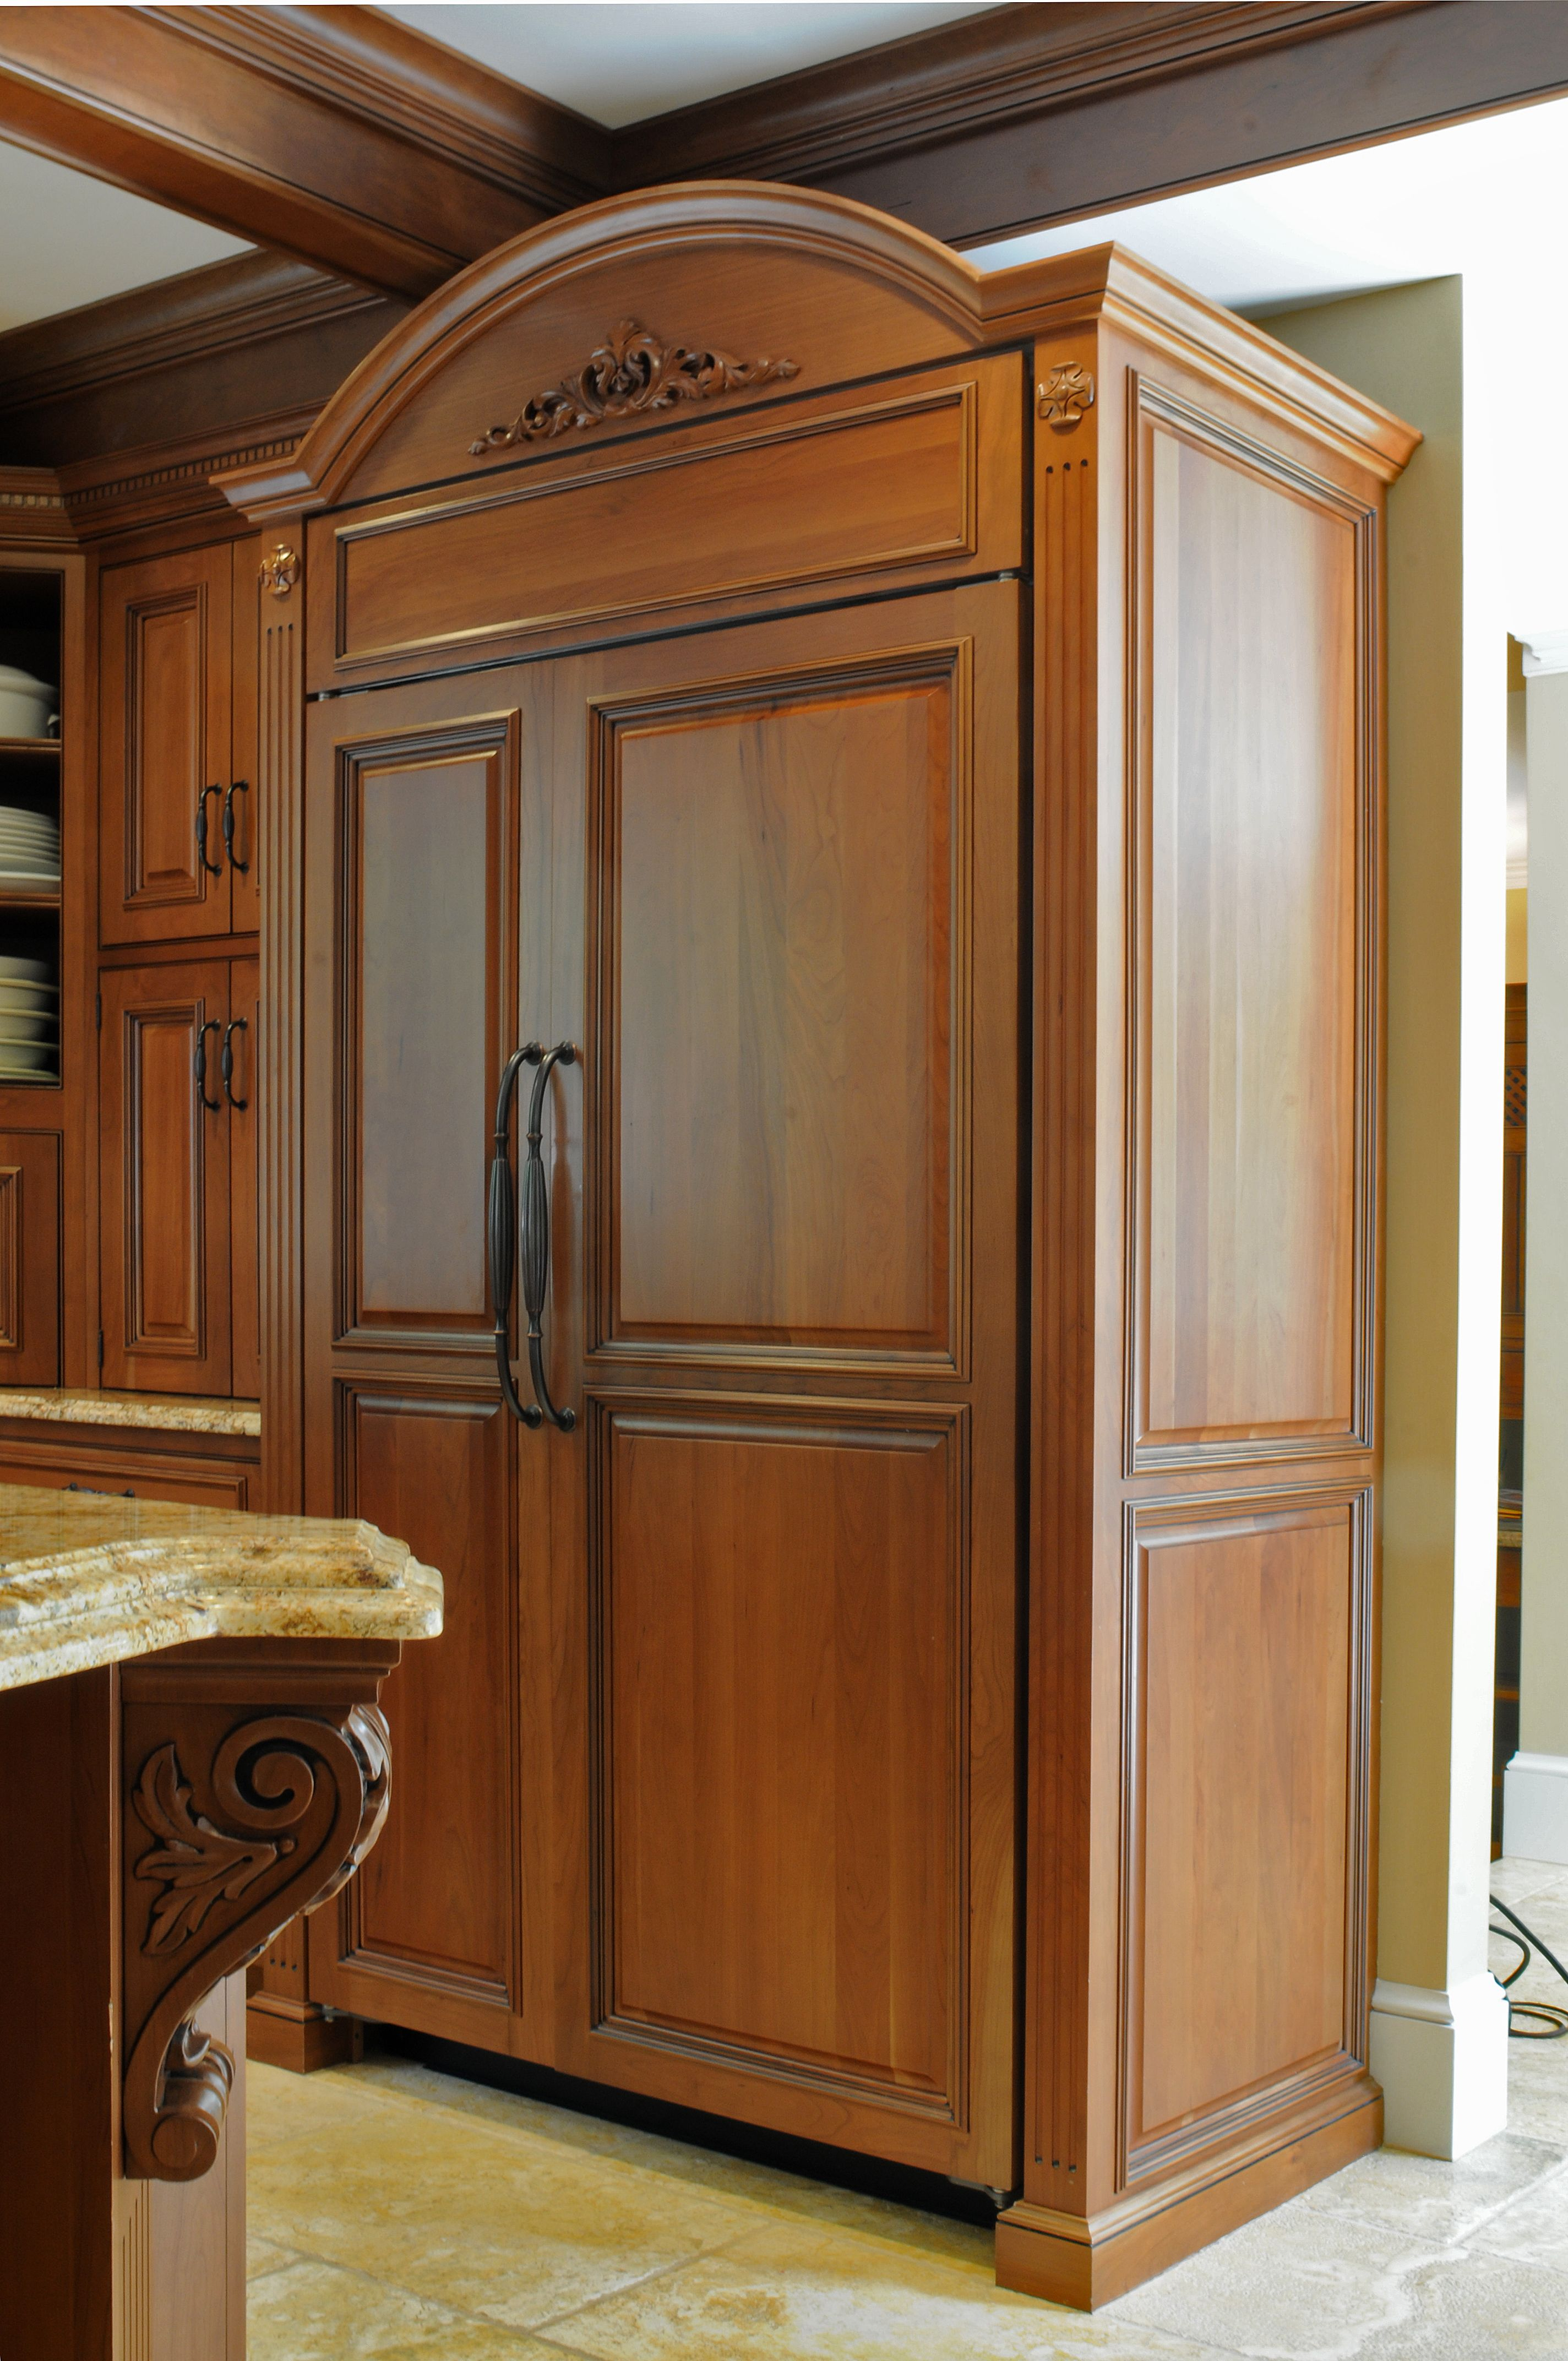 fridge that looks like an armoire kitchen plans pinterest armoires kitchens and refrigerator. Black Bedroom Furniture Sets. Home Design Ideas